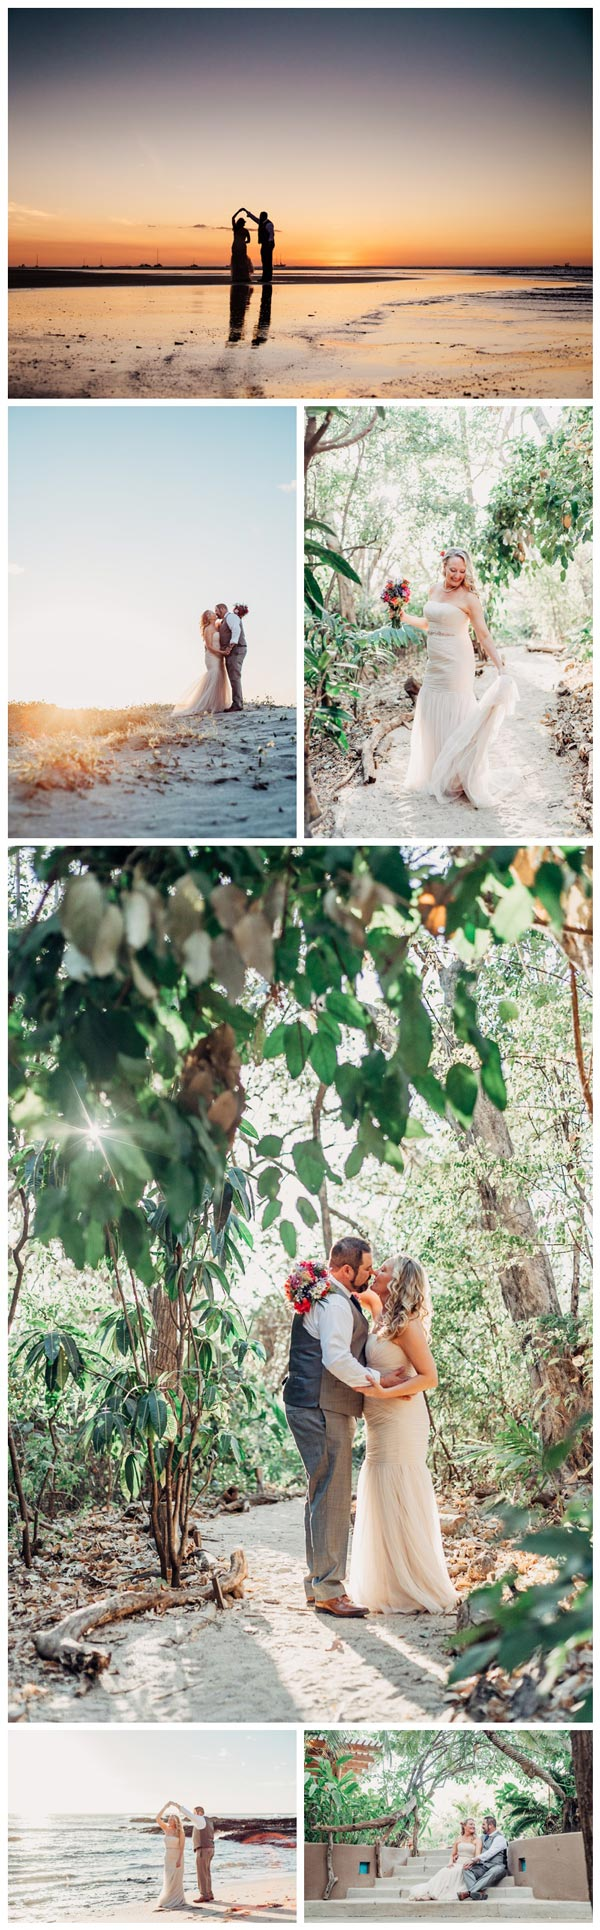 Beach elopement in Tamarindo Costa Rica. Photographed by Kristen M. Brown, Samba to the Sea Photography.